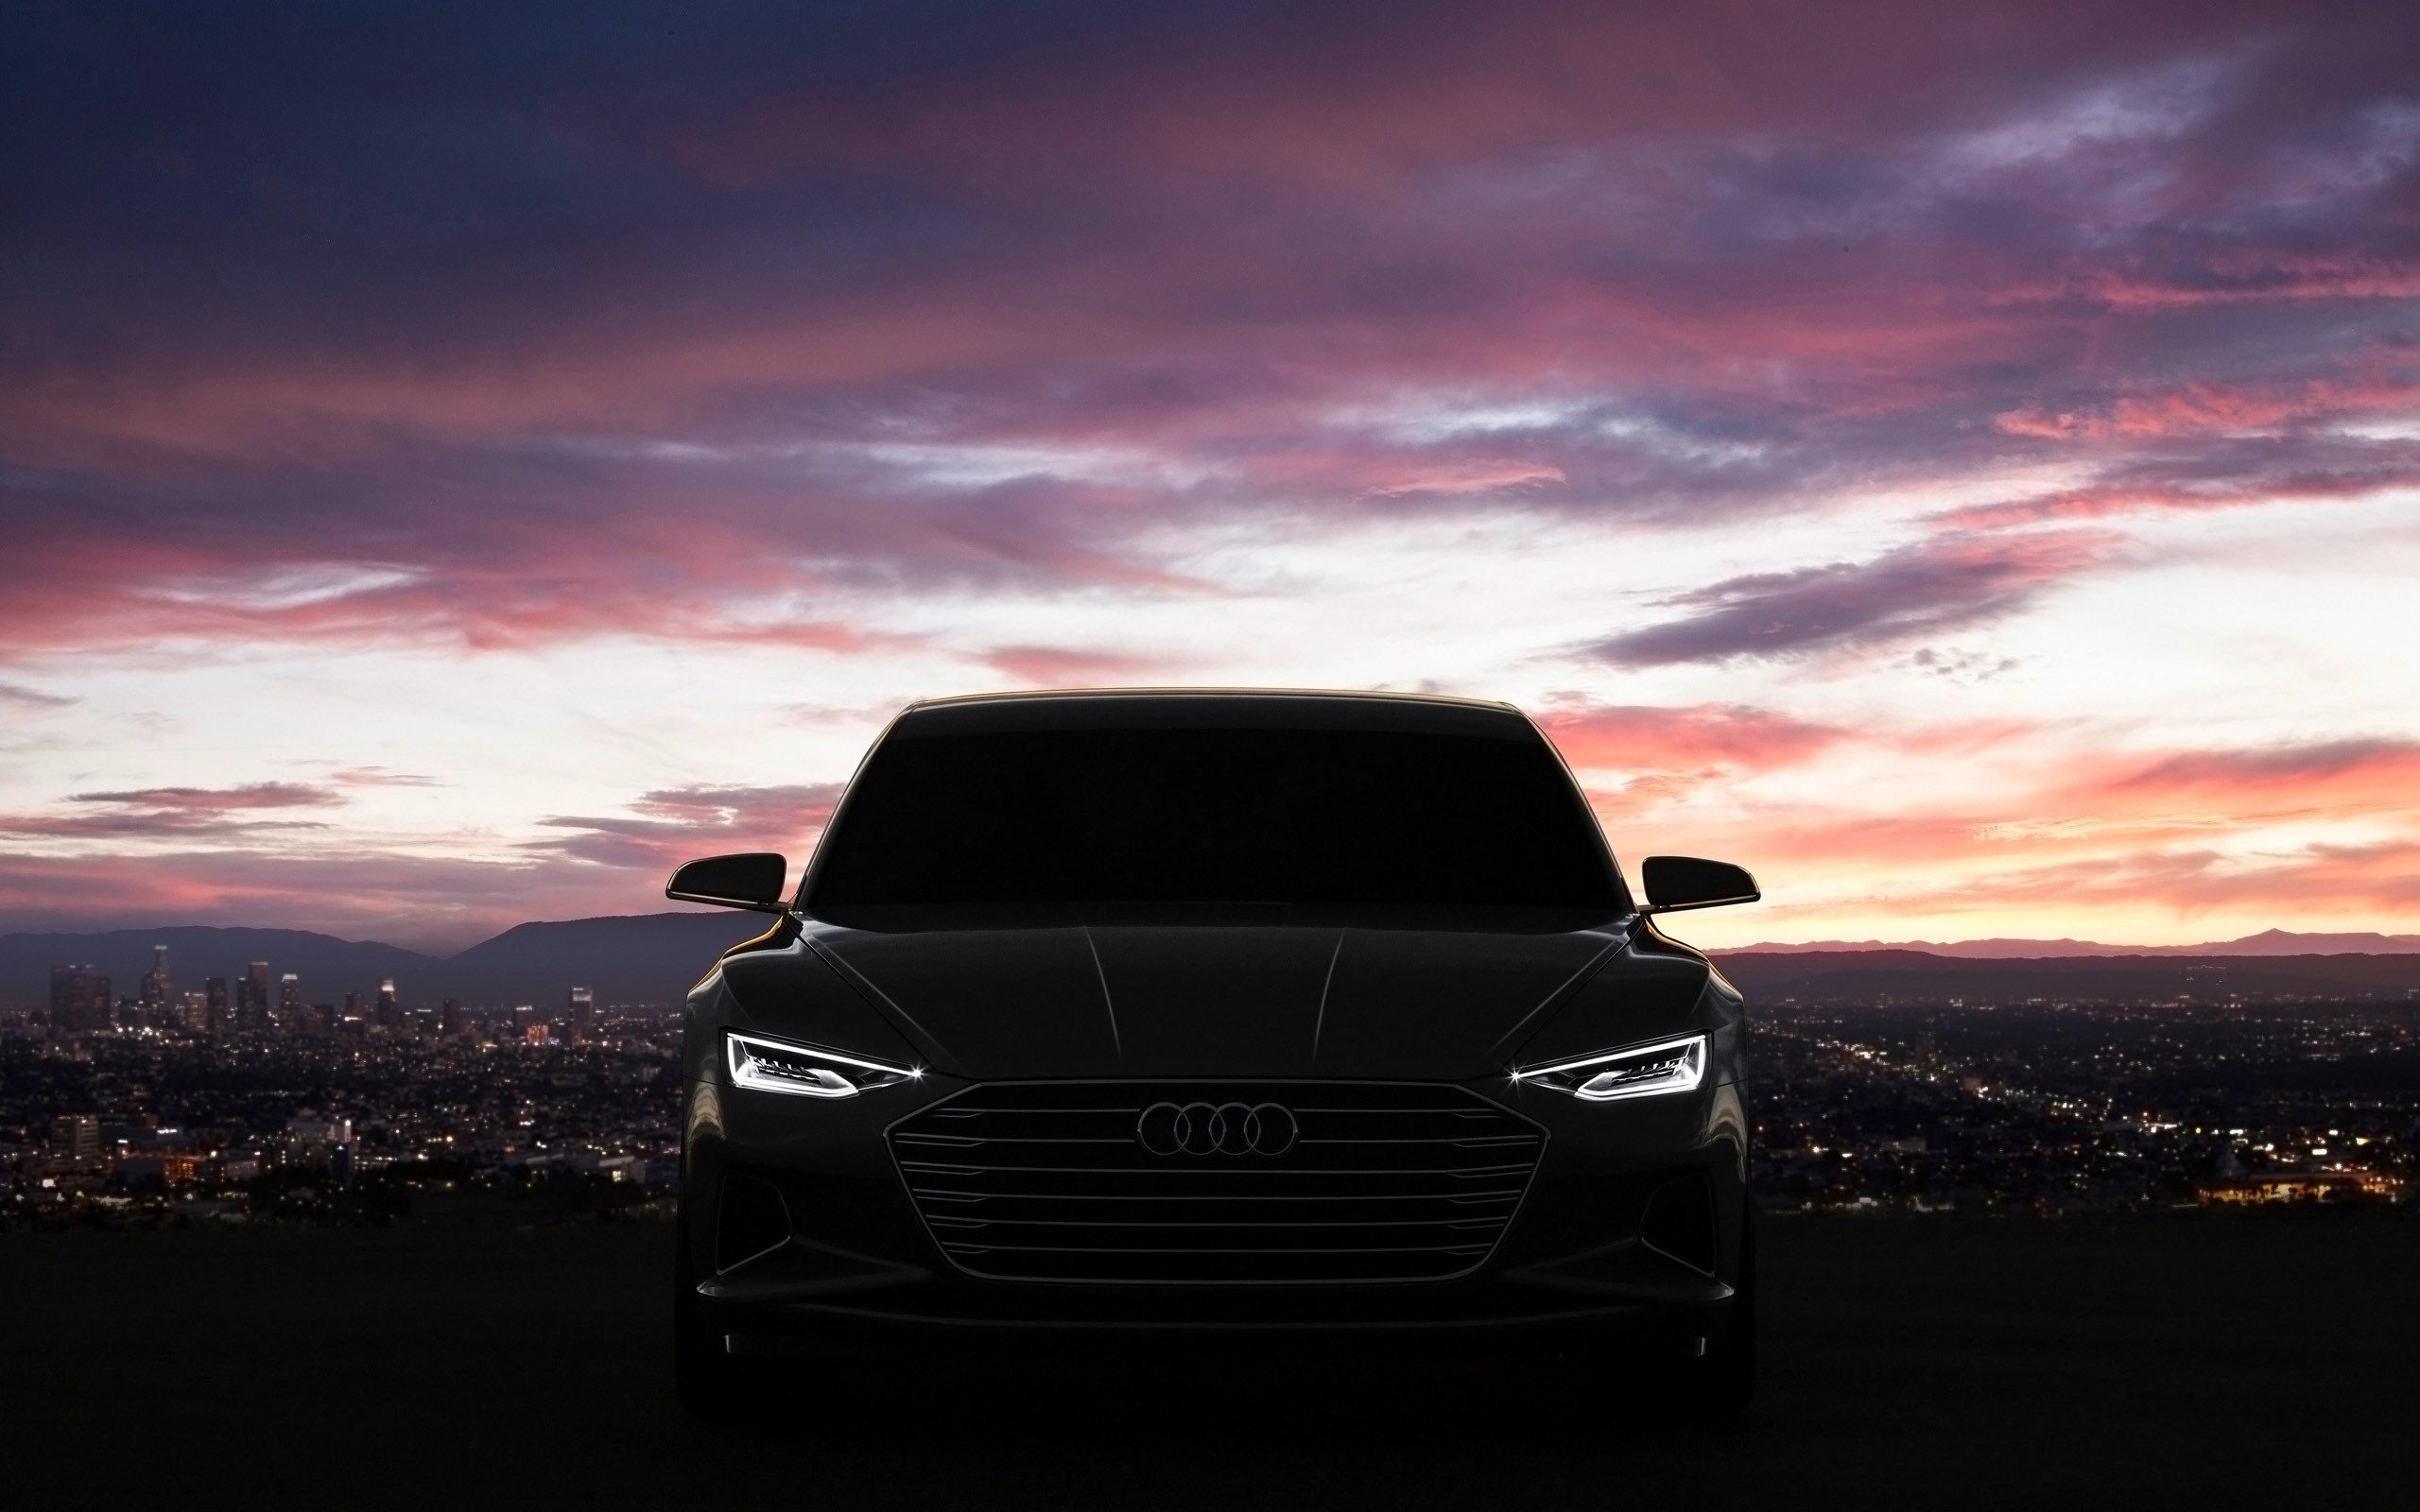 Latest Black Audi Backgrounds Page 2 Of 3 Wallpaper Wiki Free Download